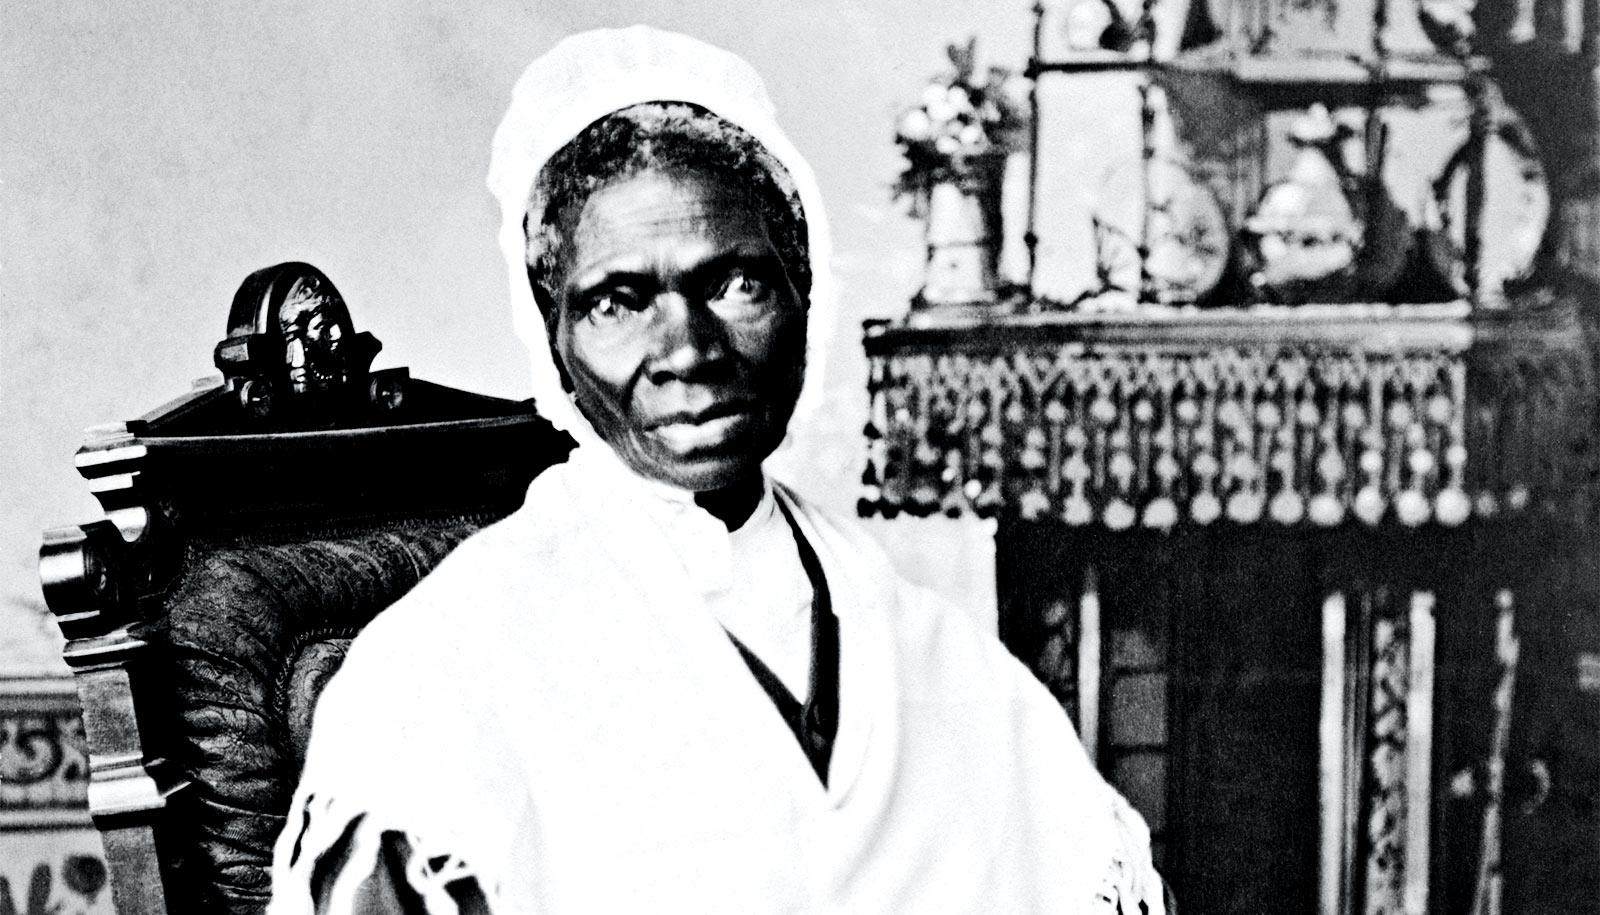 Sojourner Truth sits in a chair looking at the camera, wrapped in a white shawl